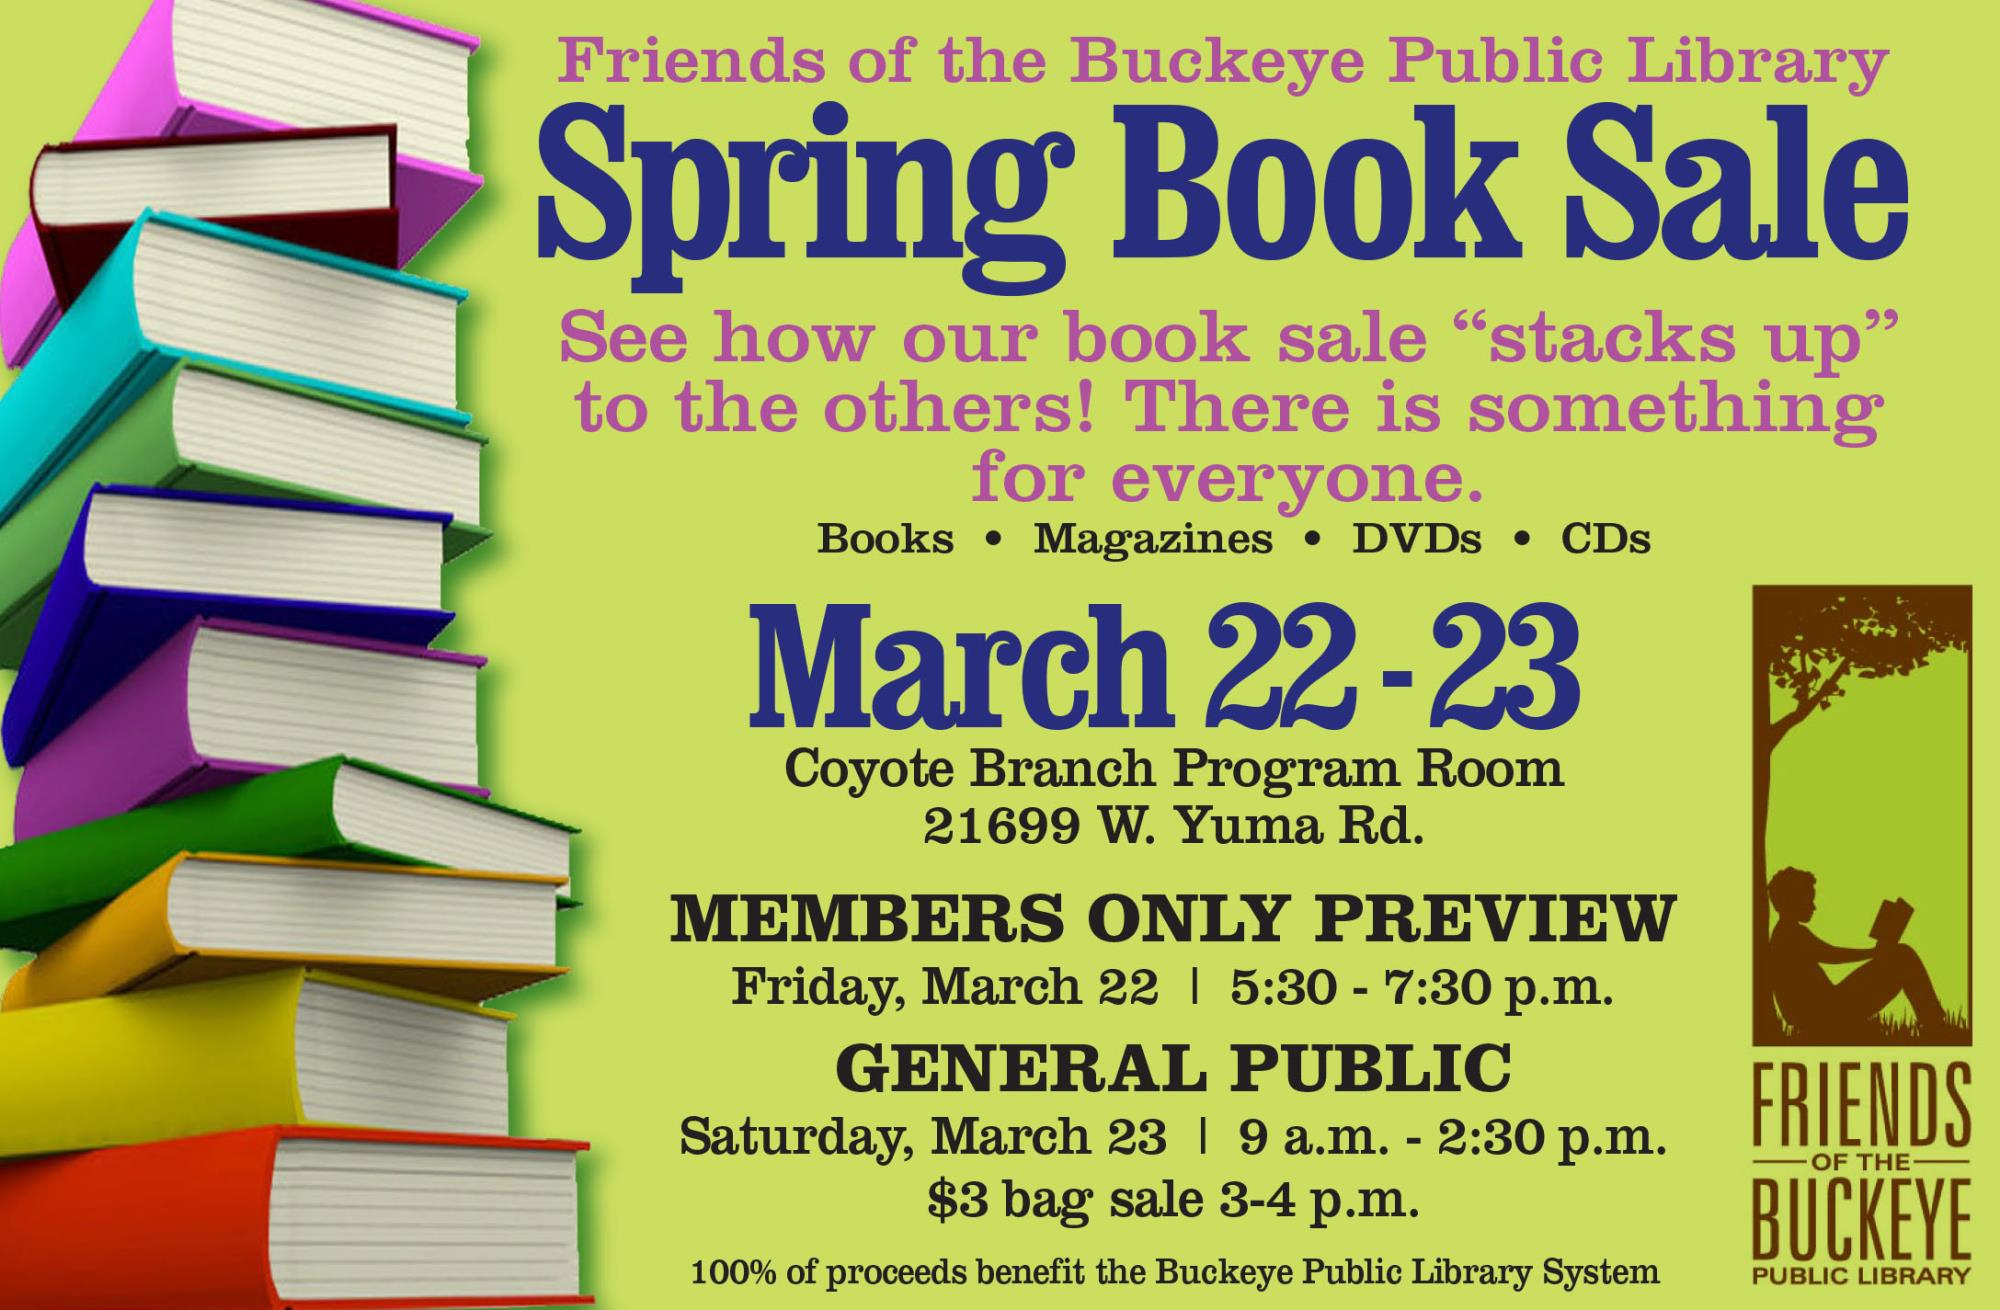 Ad for the spring book sale showing a stack of books